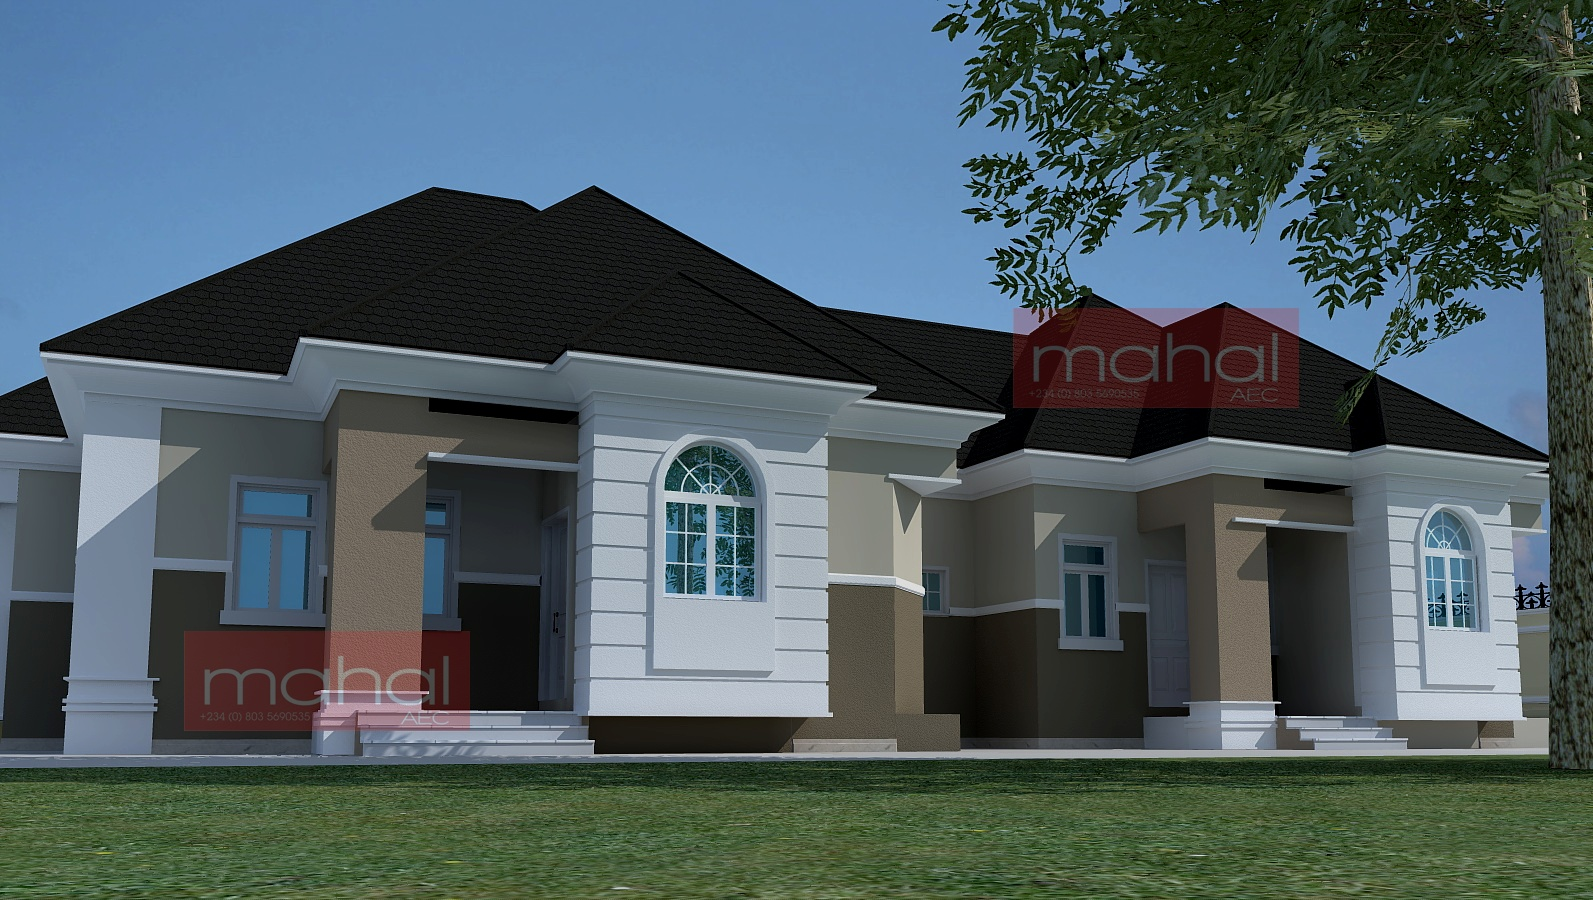 Contemporary Nigerian Residential Architecture Luxury 3: Contemporary Nigerian Residential Architecture: 2 Bedroom